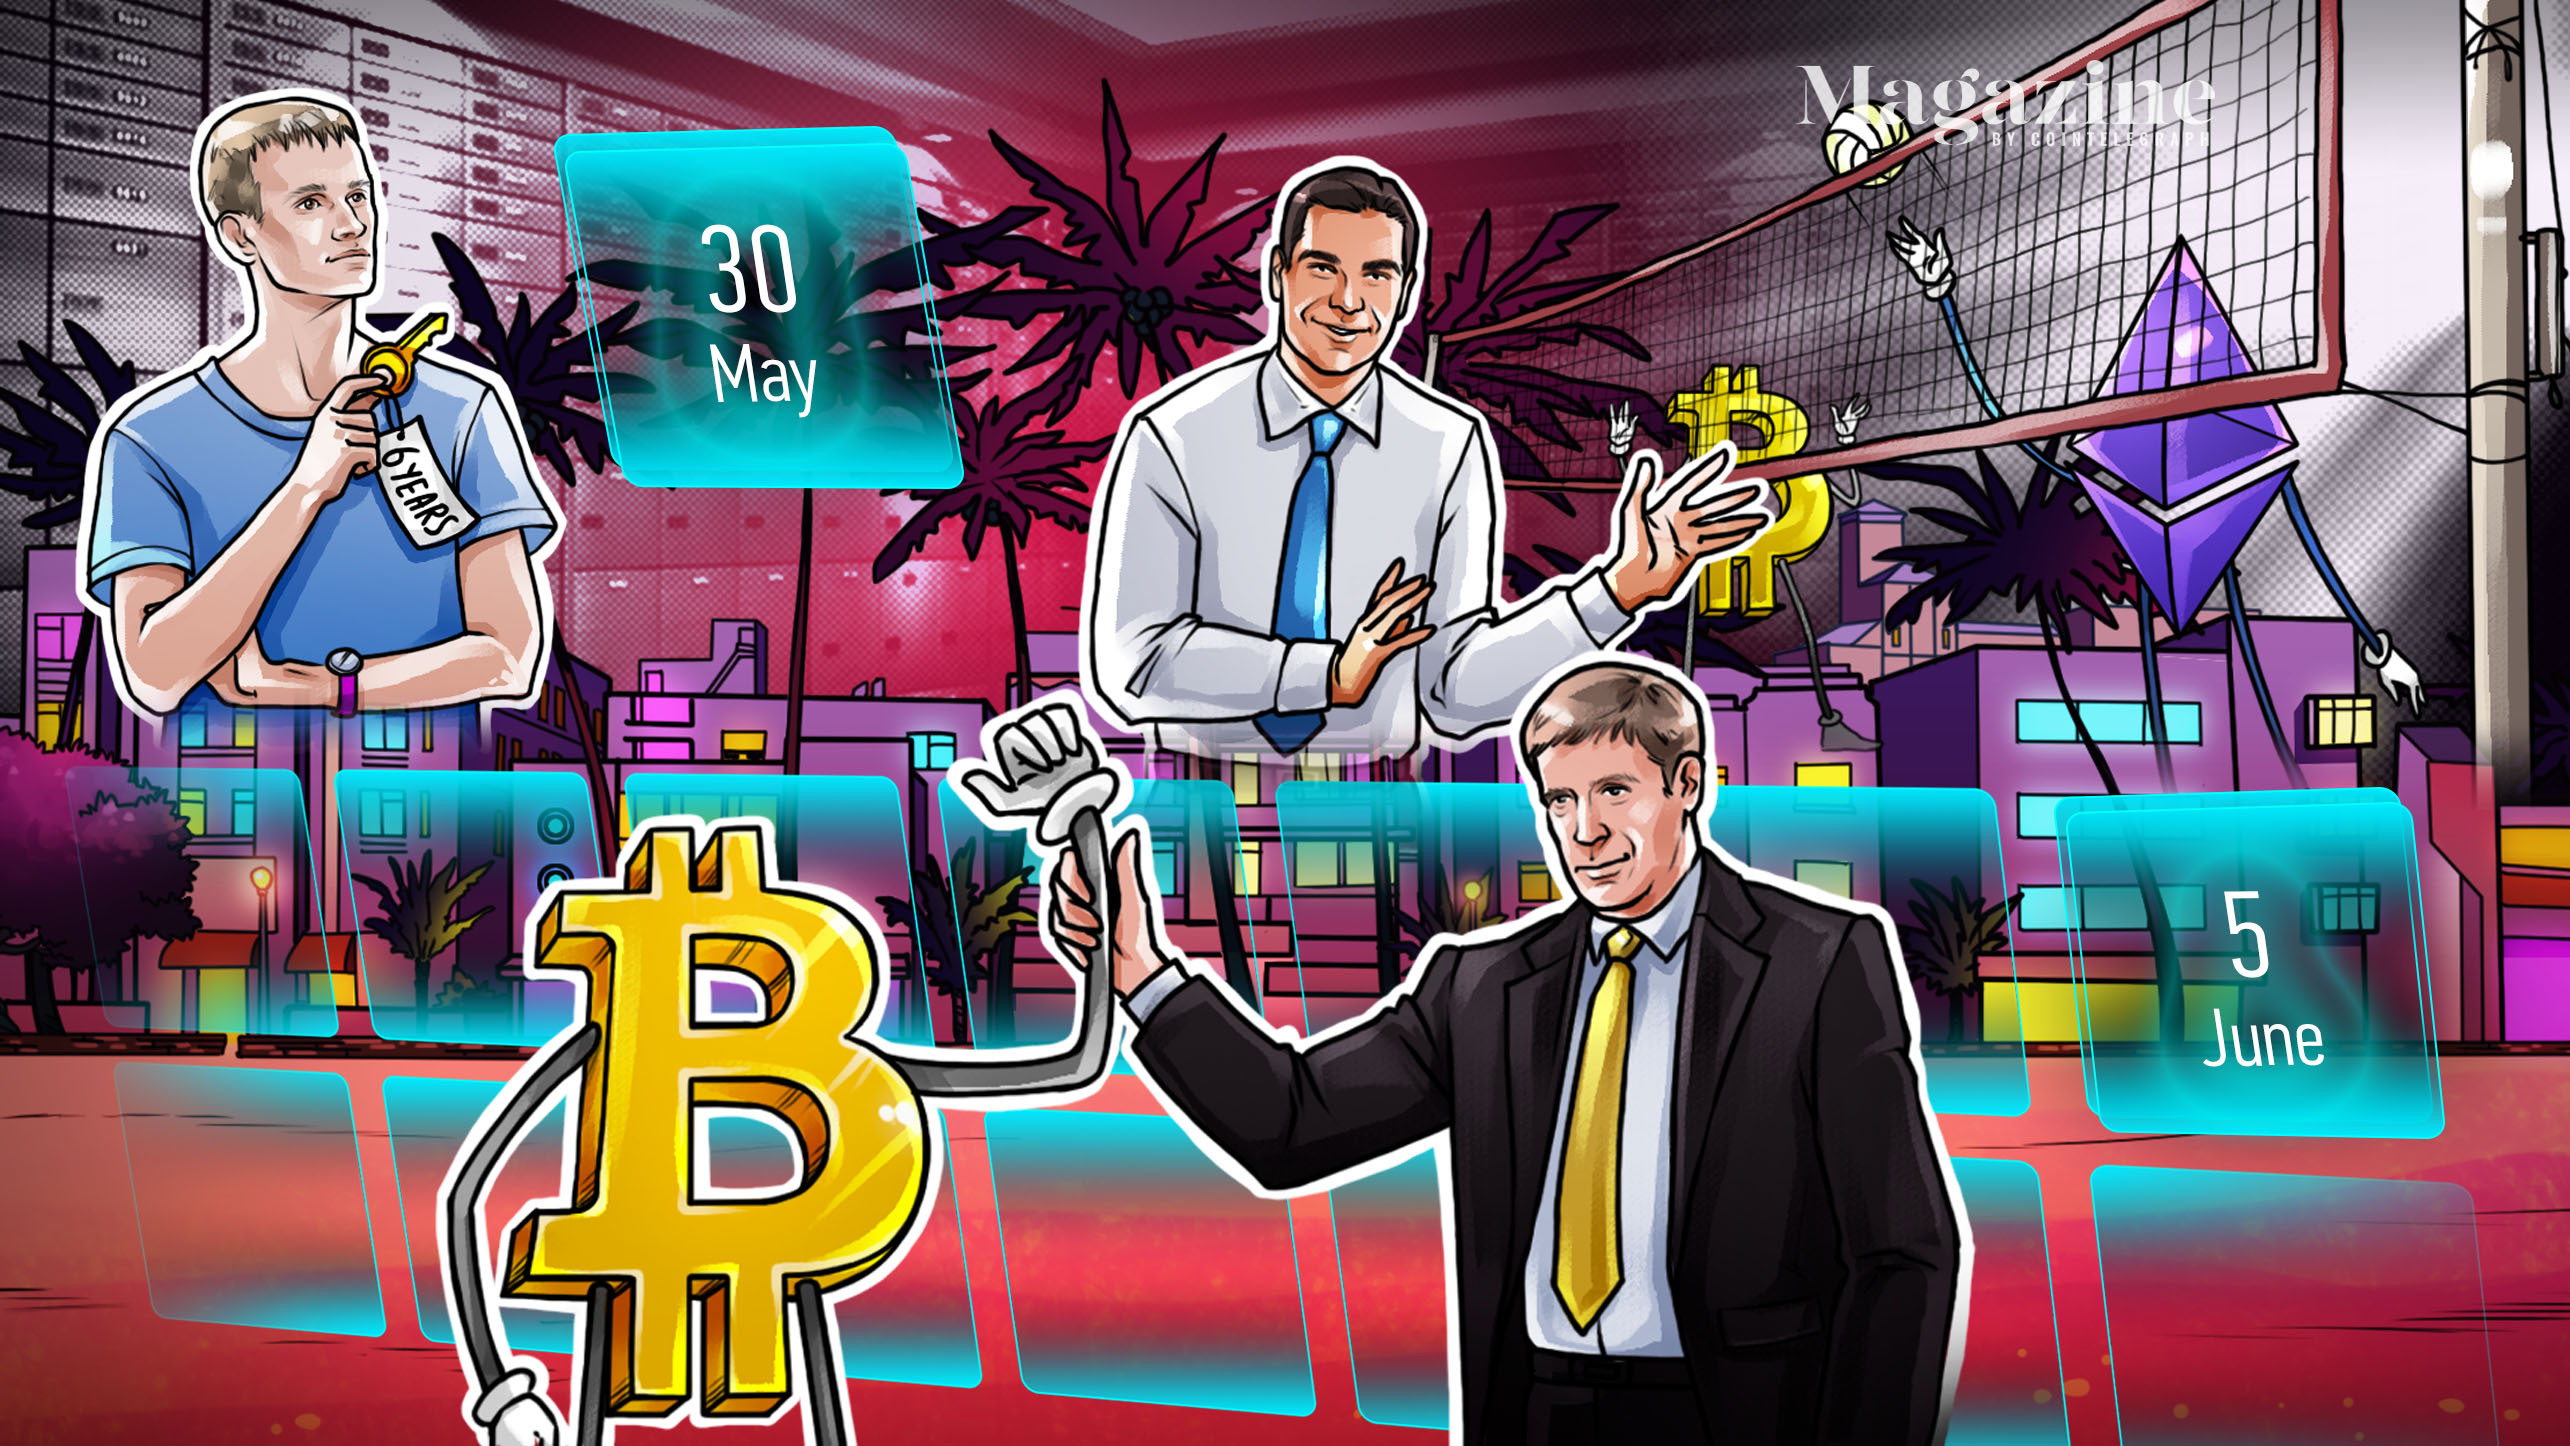 Bitcoin Miami mania, Dogecoin bounces back, Eth2 woes: Hodler's Digest, May 30–June 5